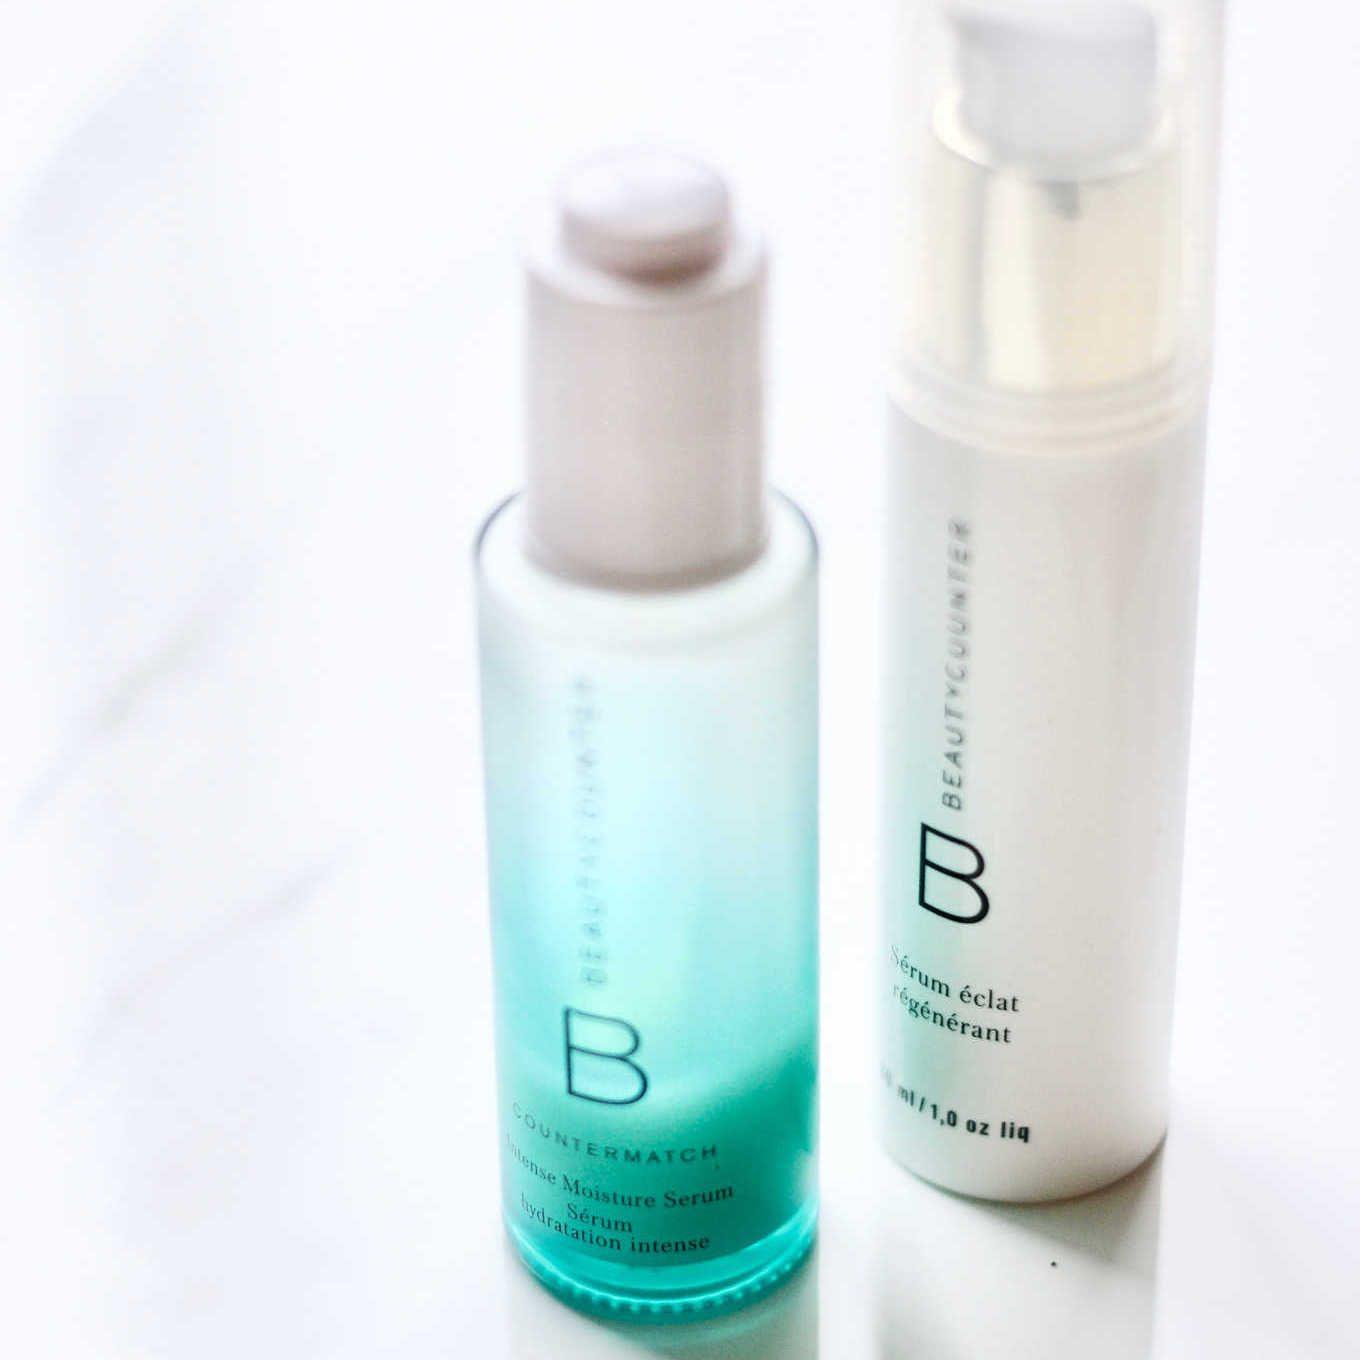 I use both Beautycounter's countermatch intense moisture serum and rejuvenating radiance serum.